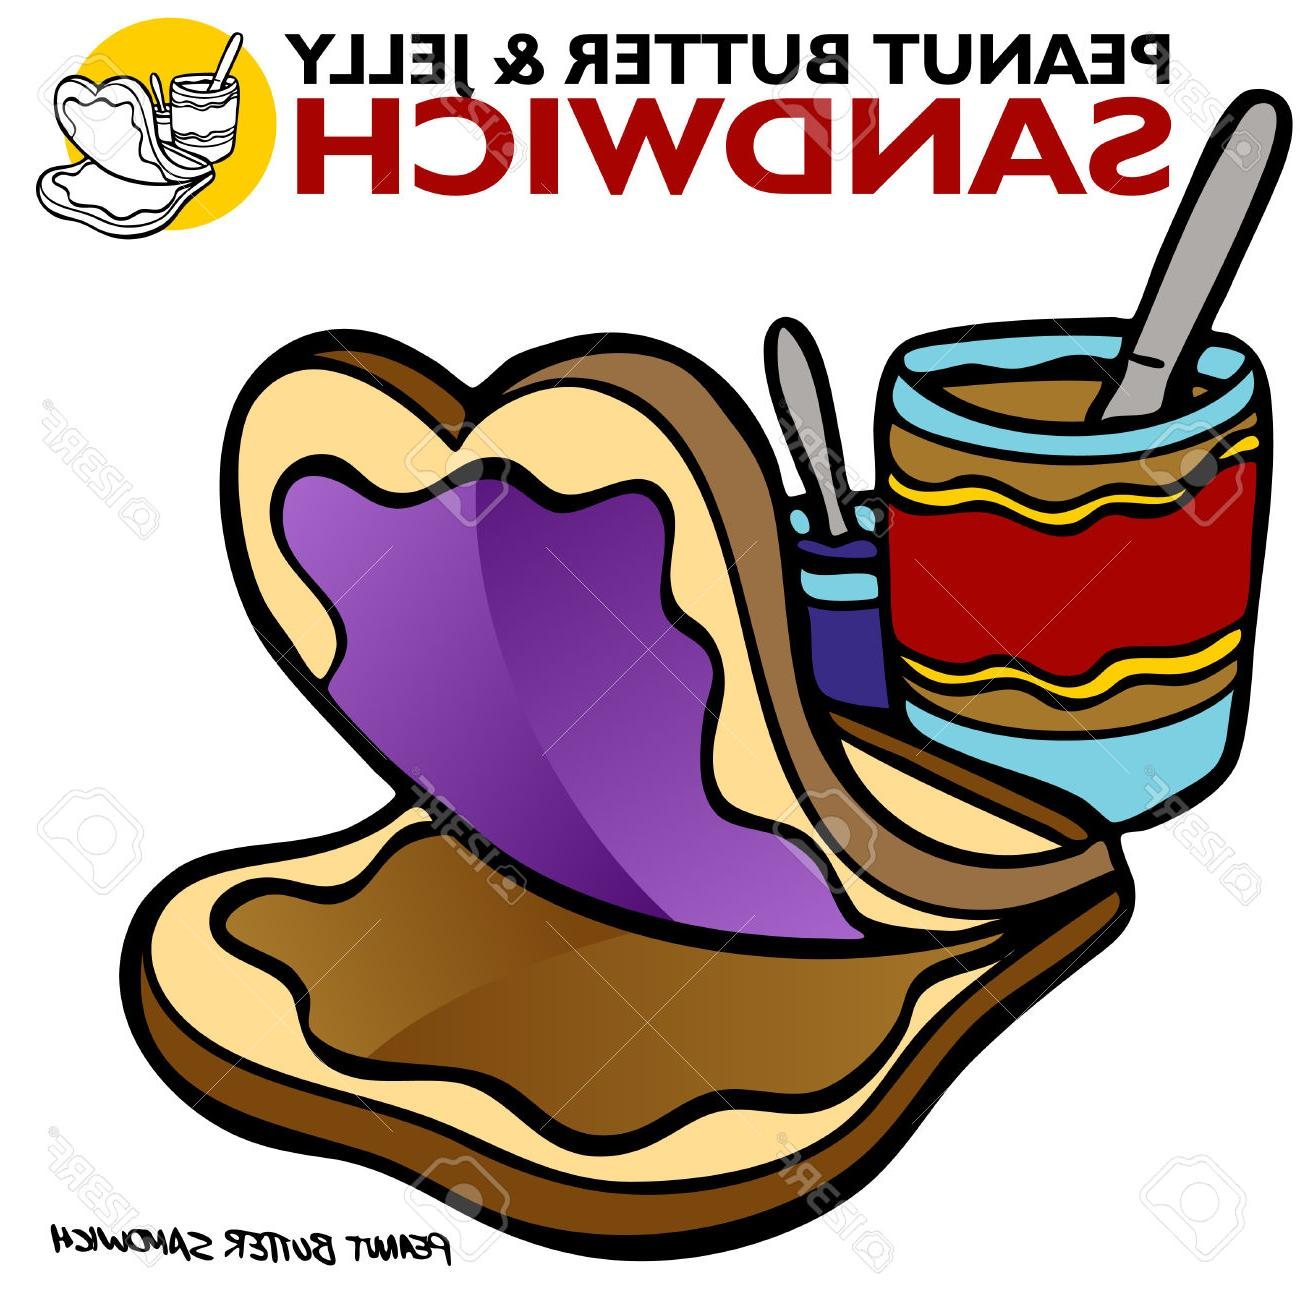 1300x1300 Best Hd An Image Of Peanut Butter Jelly Sandwich Stock Vector Photos